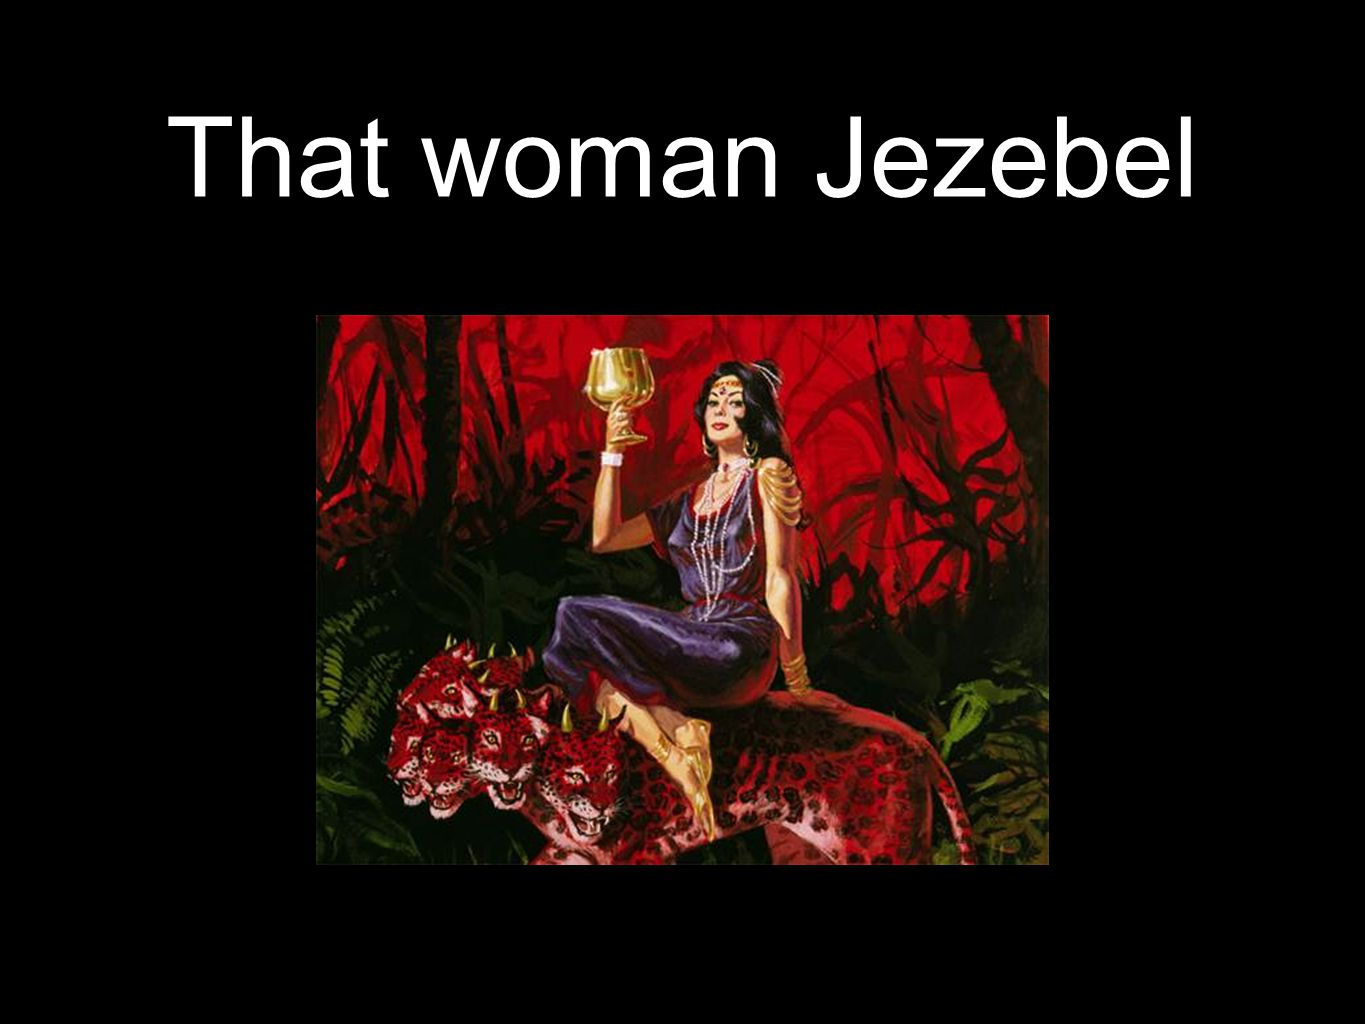 That woman Jezebel